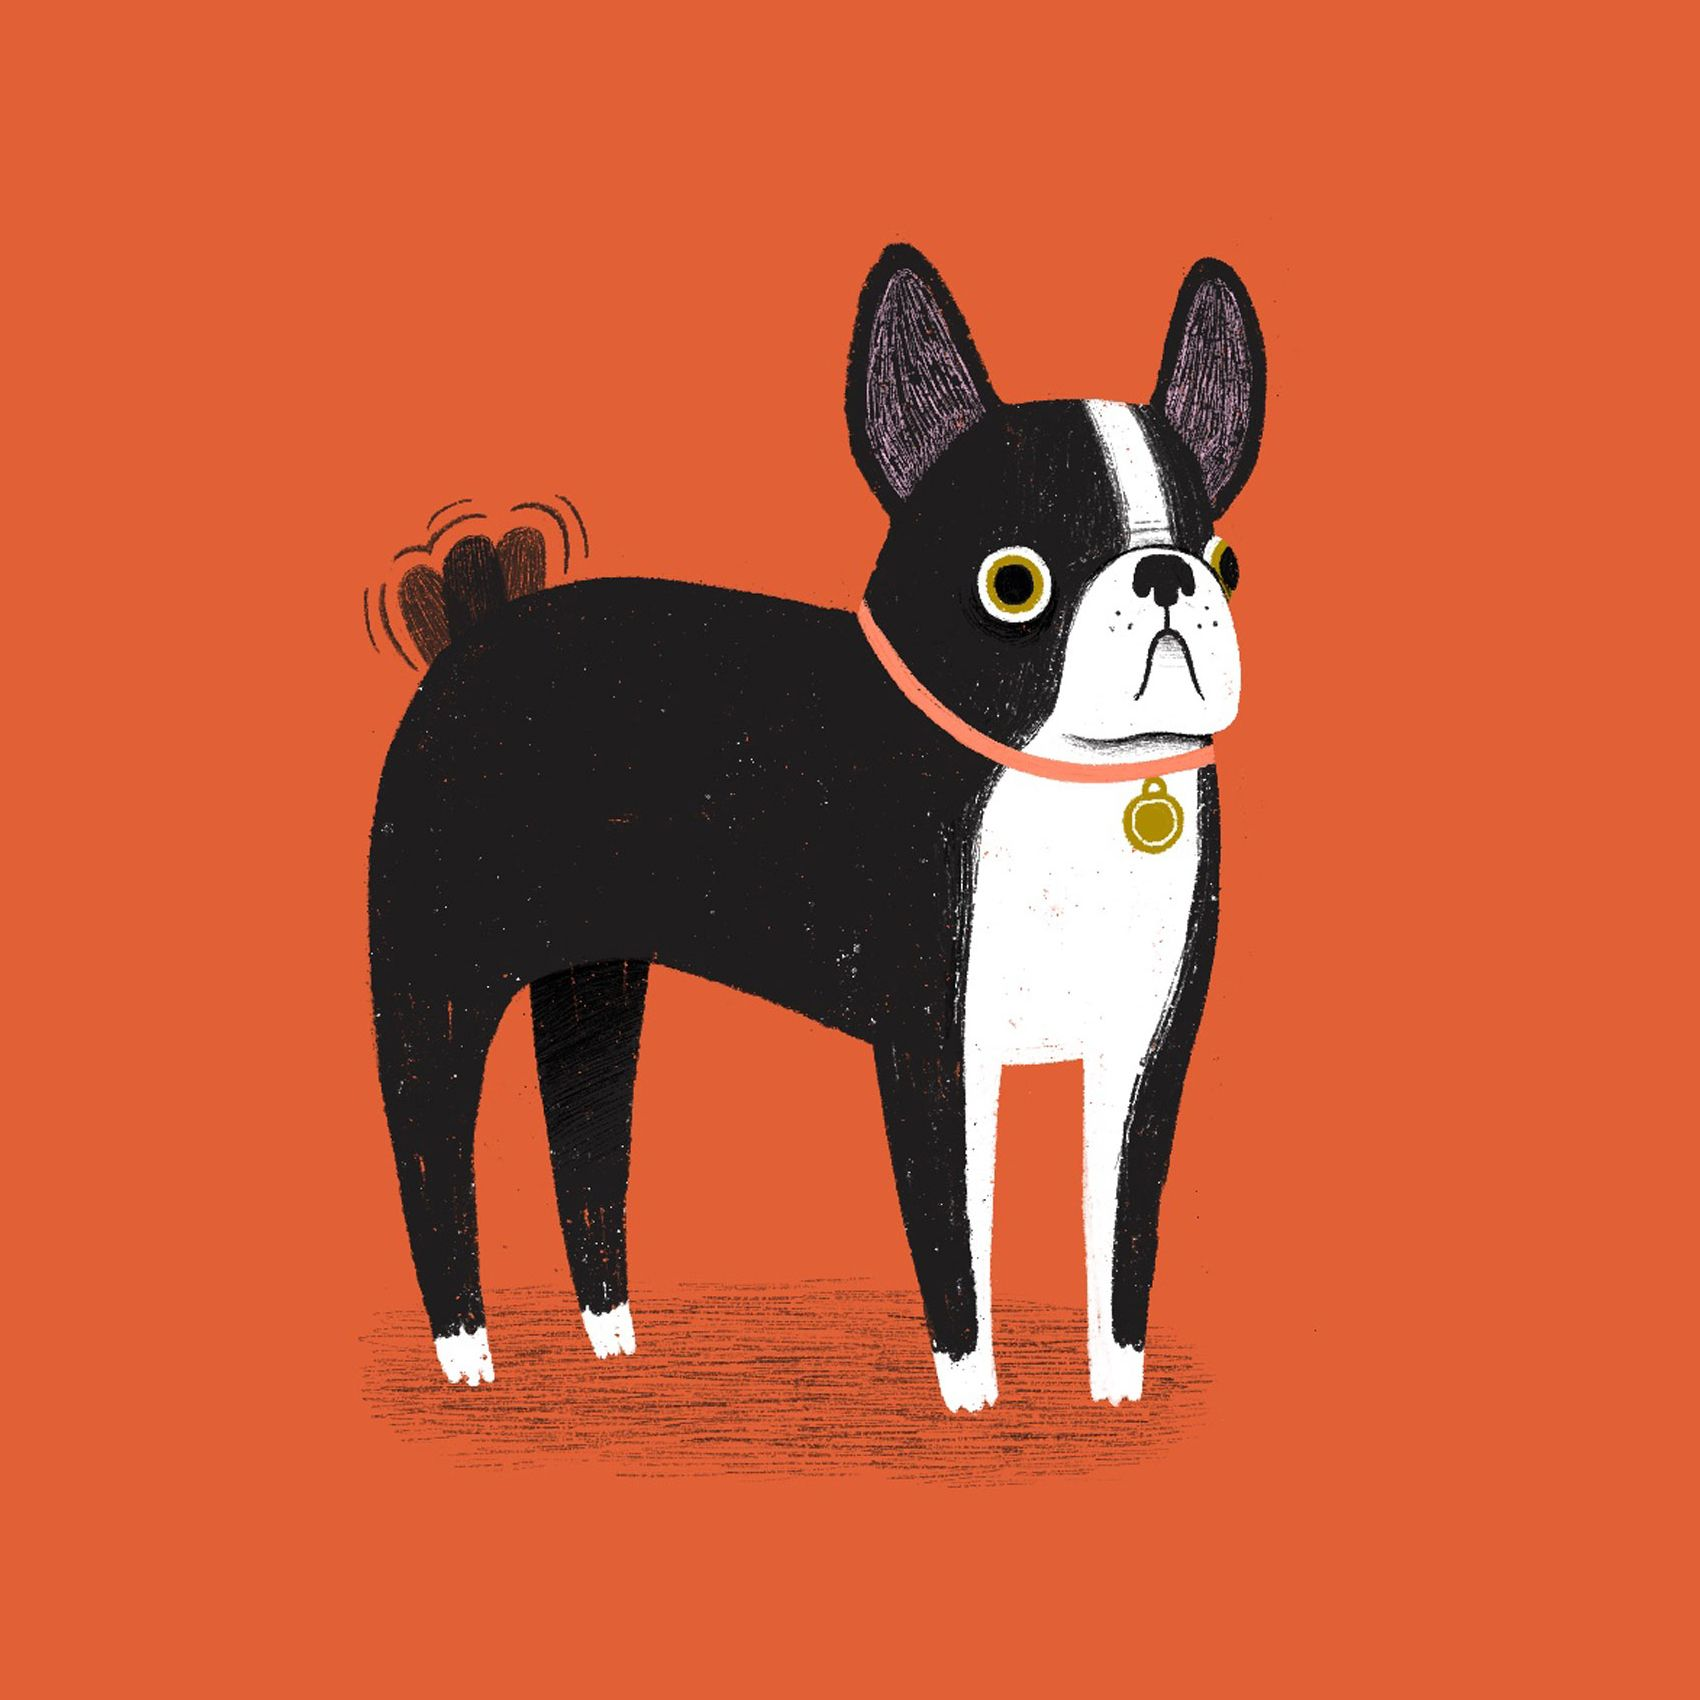 Boston Terrier Illustration In 2020 Boston Terrier Illustration Dog Illustration Boston Terrier Painting